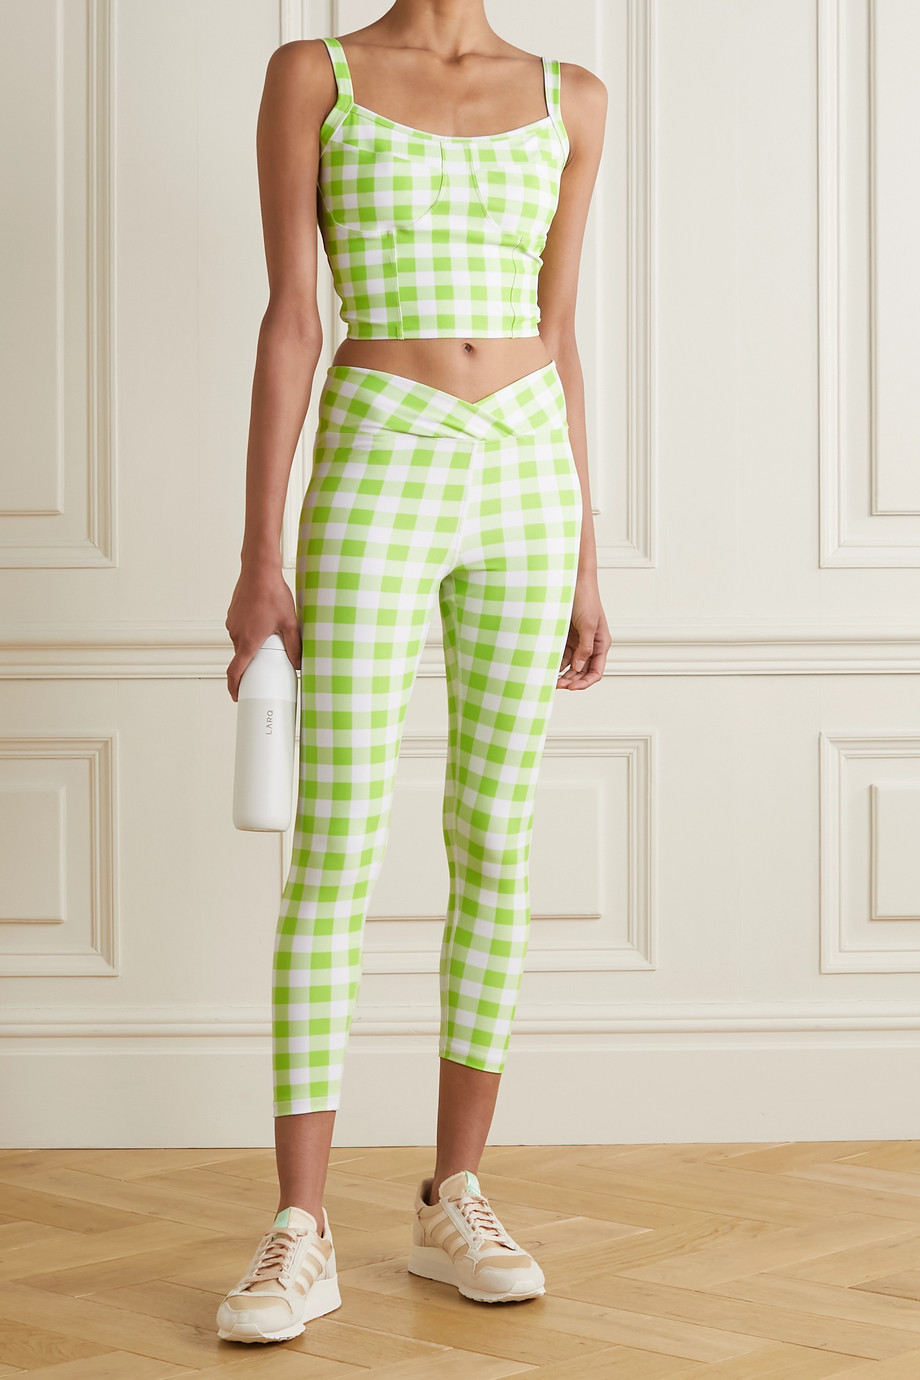 Year of Ours Veronica cropped gingham stretch top